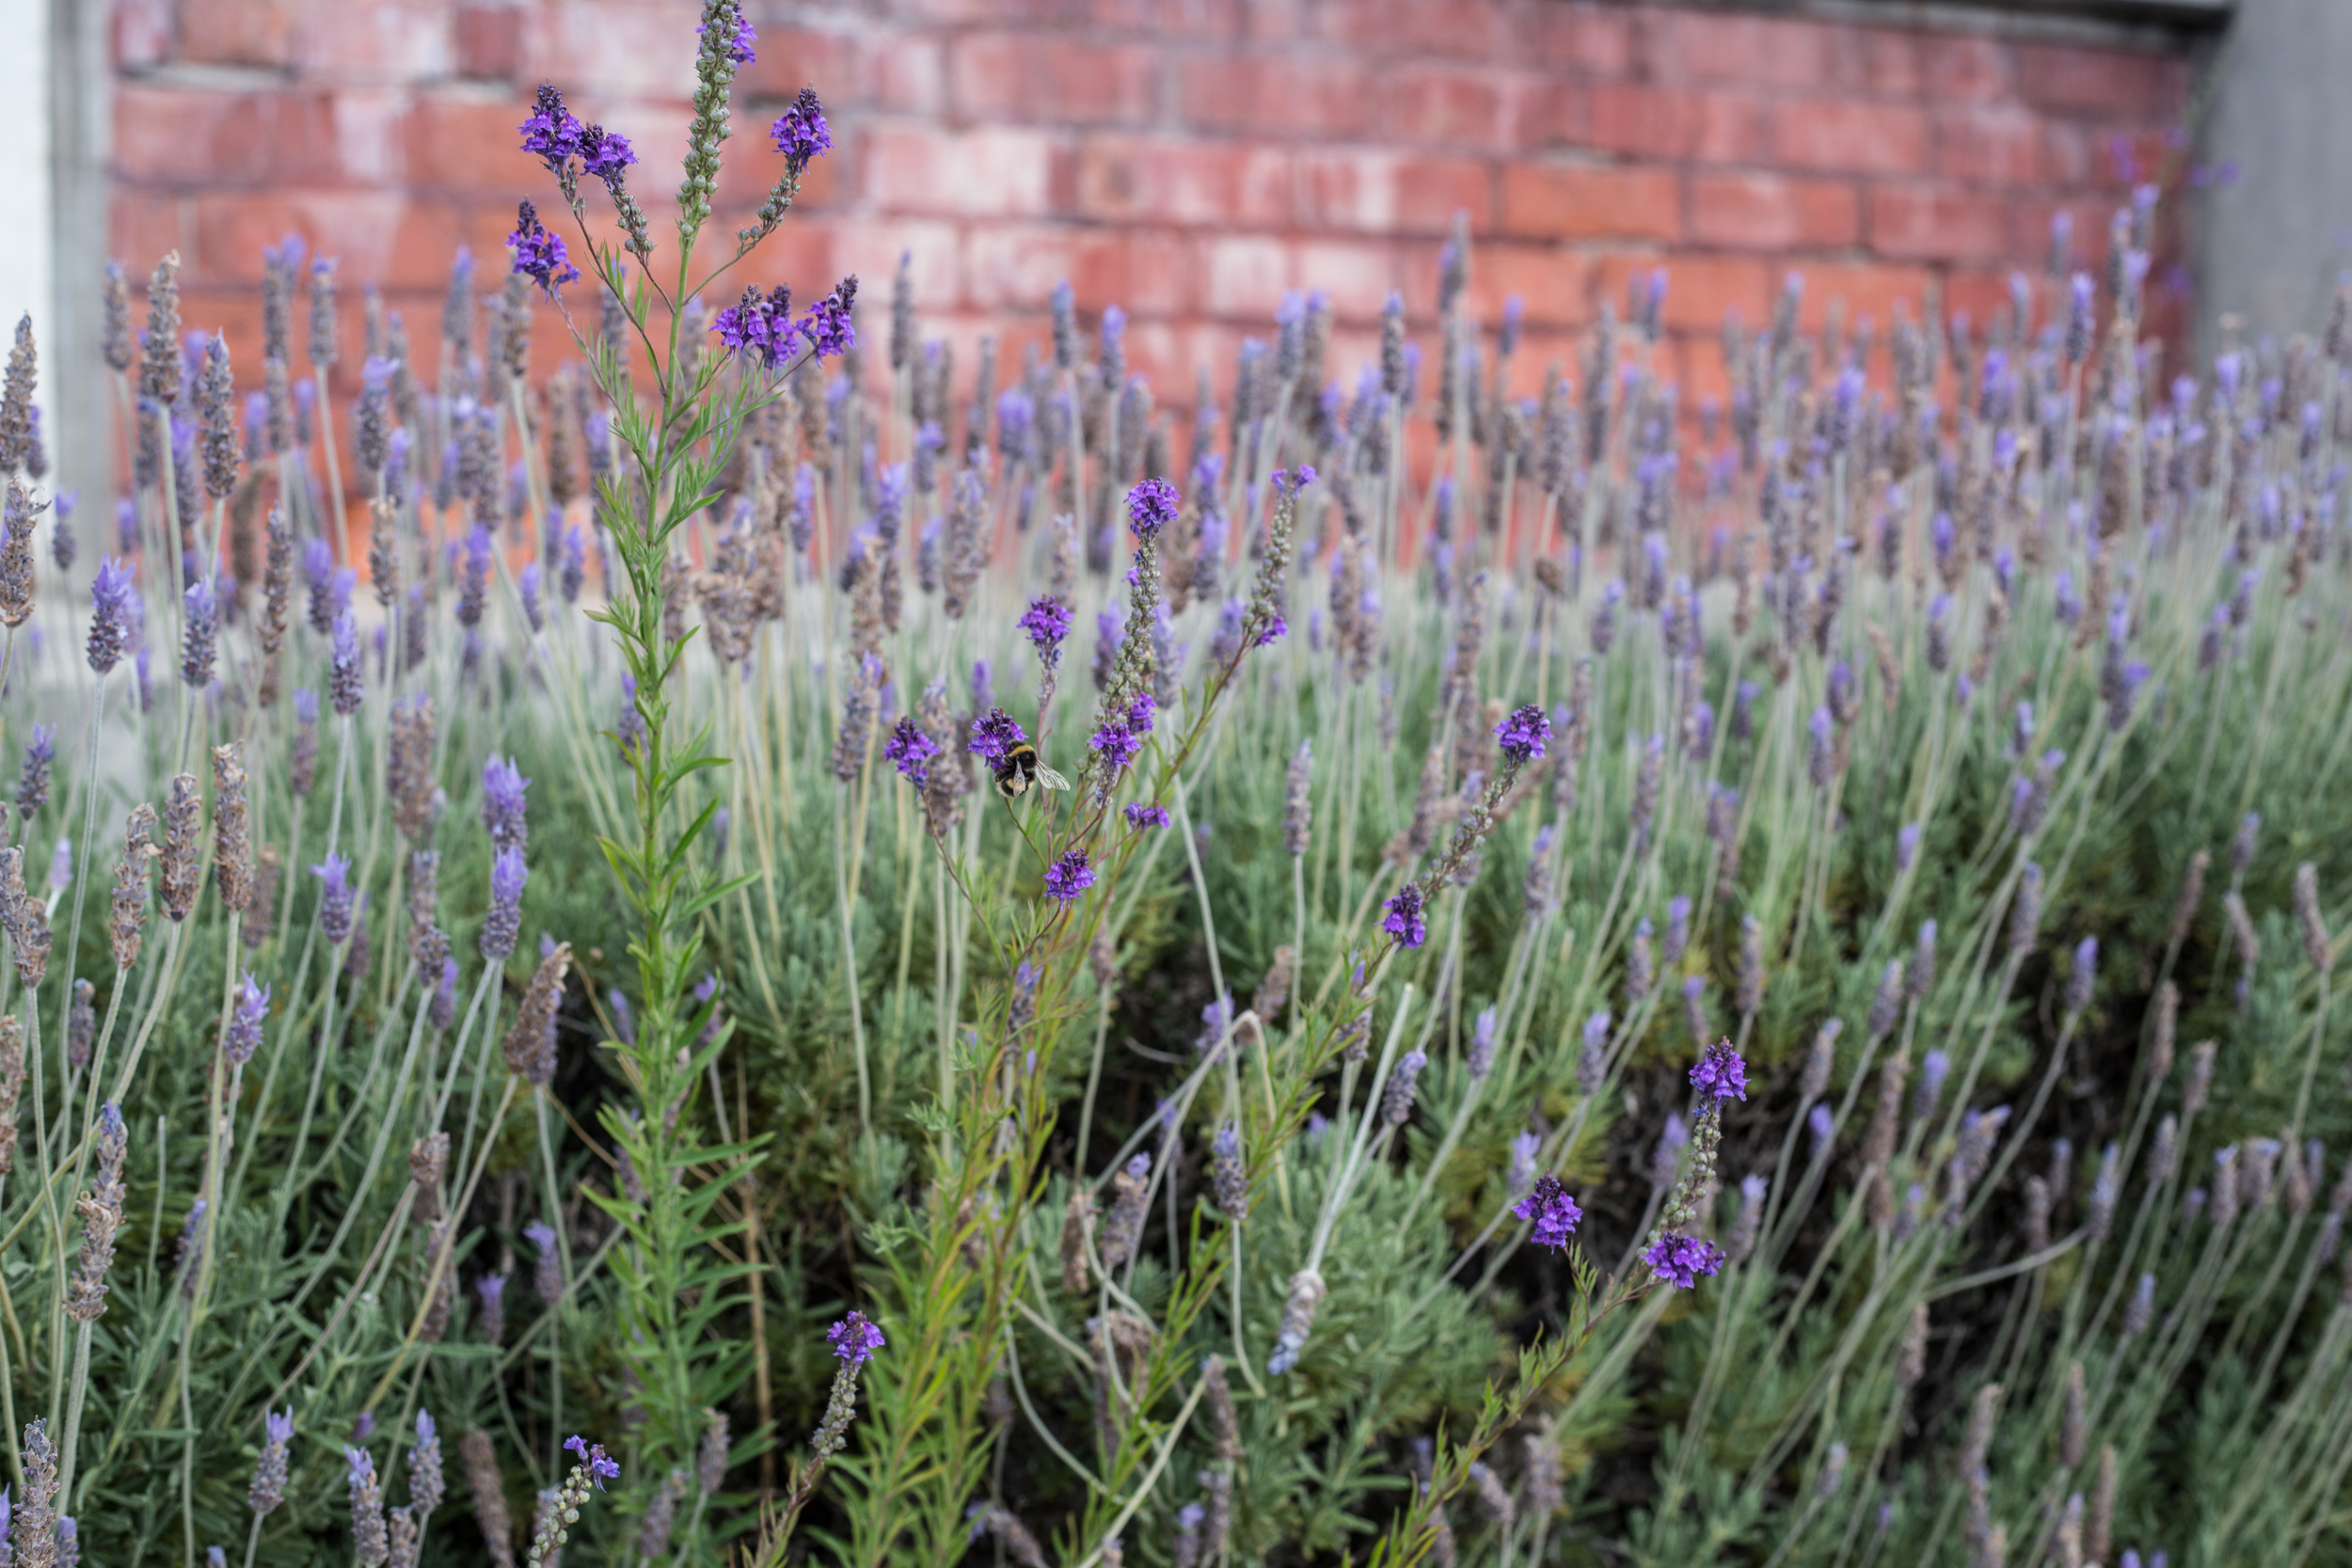 Bumble bee in the lavender